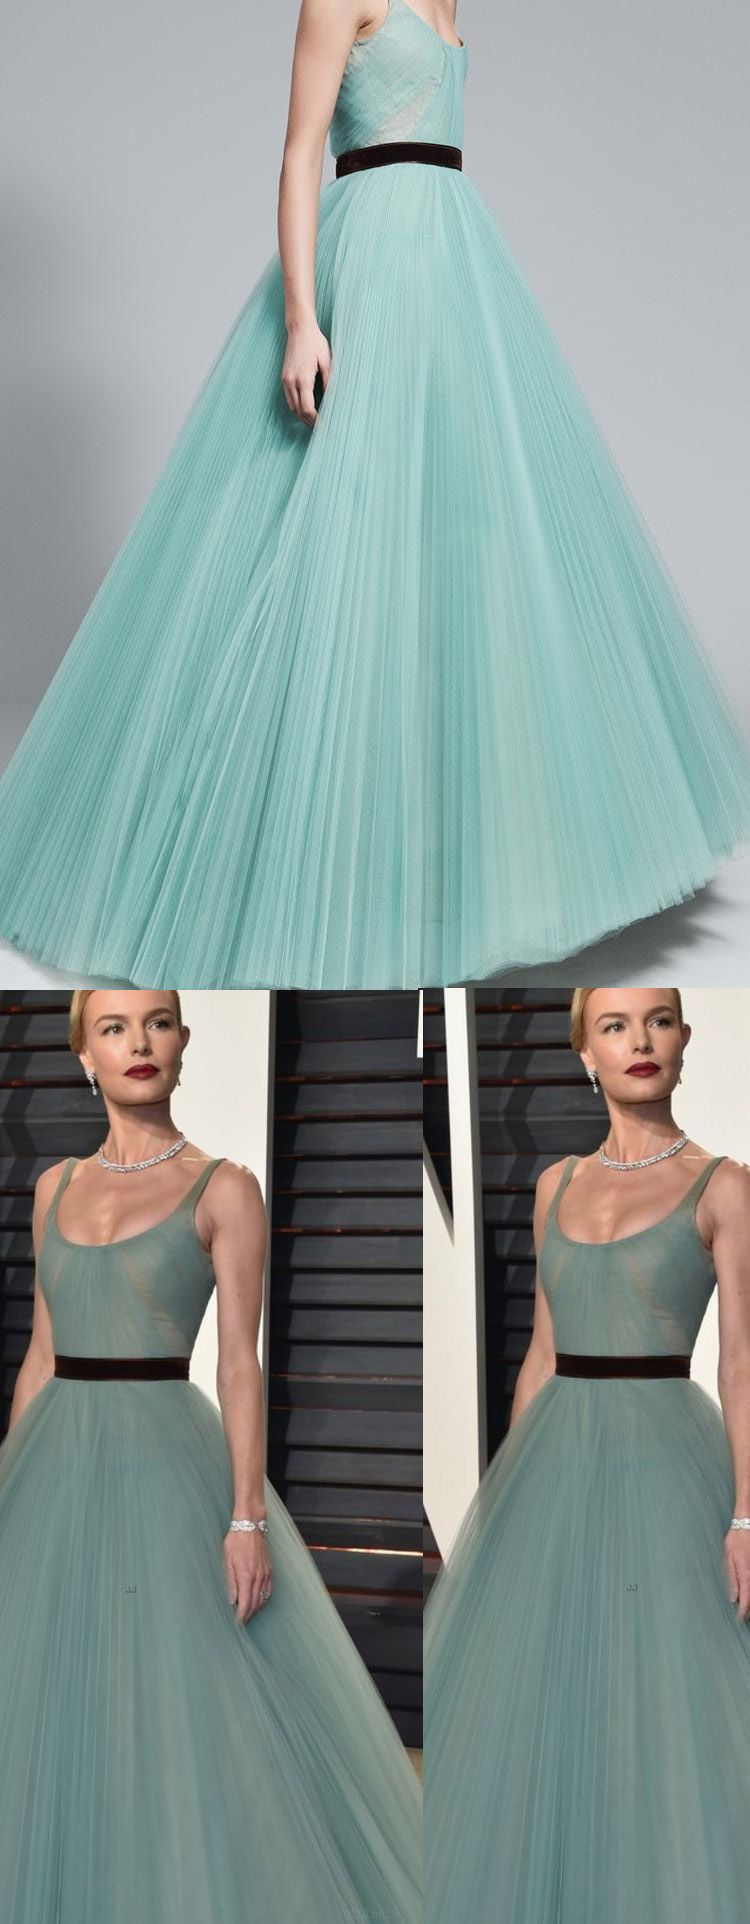 Ruffles light blue evening prom dresses enticing long straps